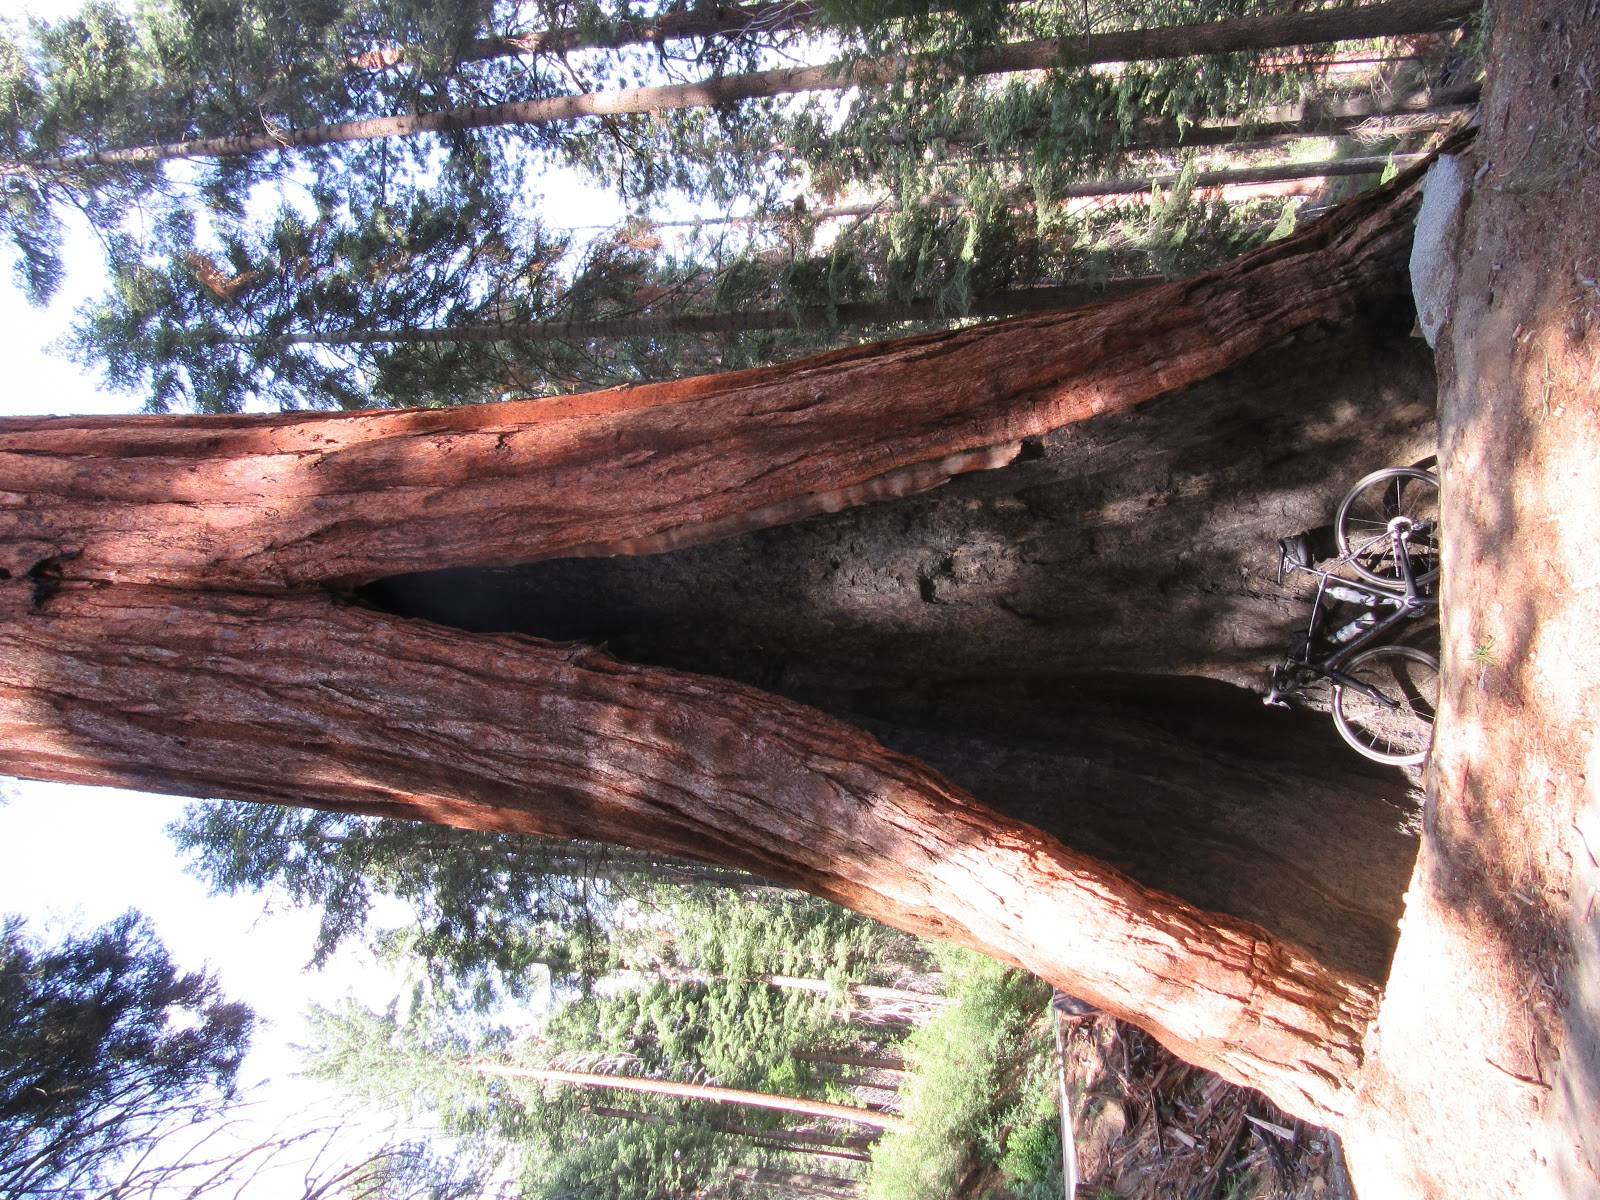 Riding bike  - bicycle inside Giant Sequoias on Mineral King Road -